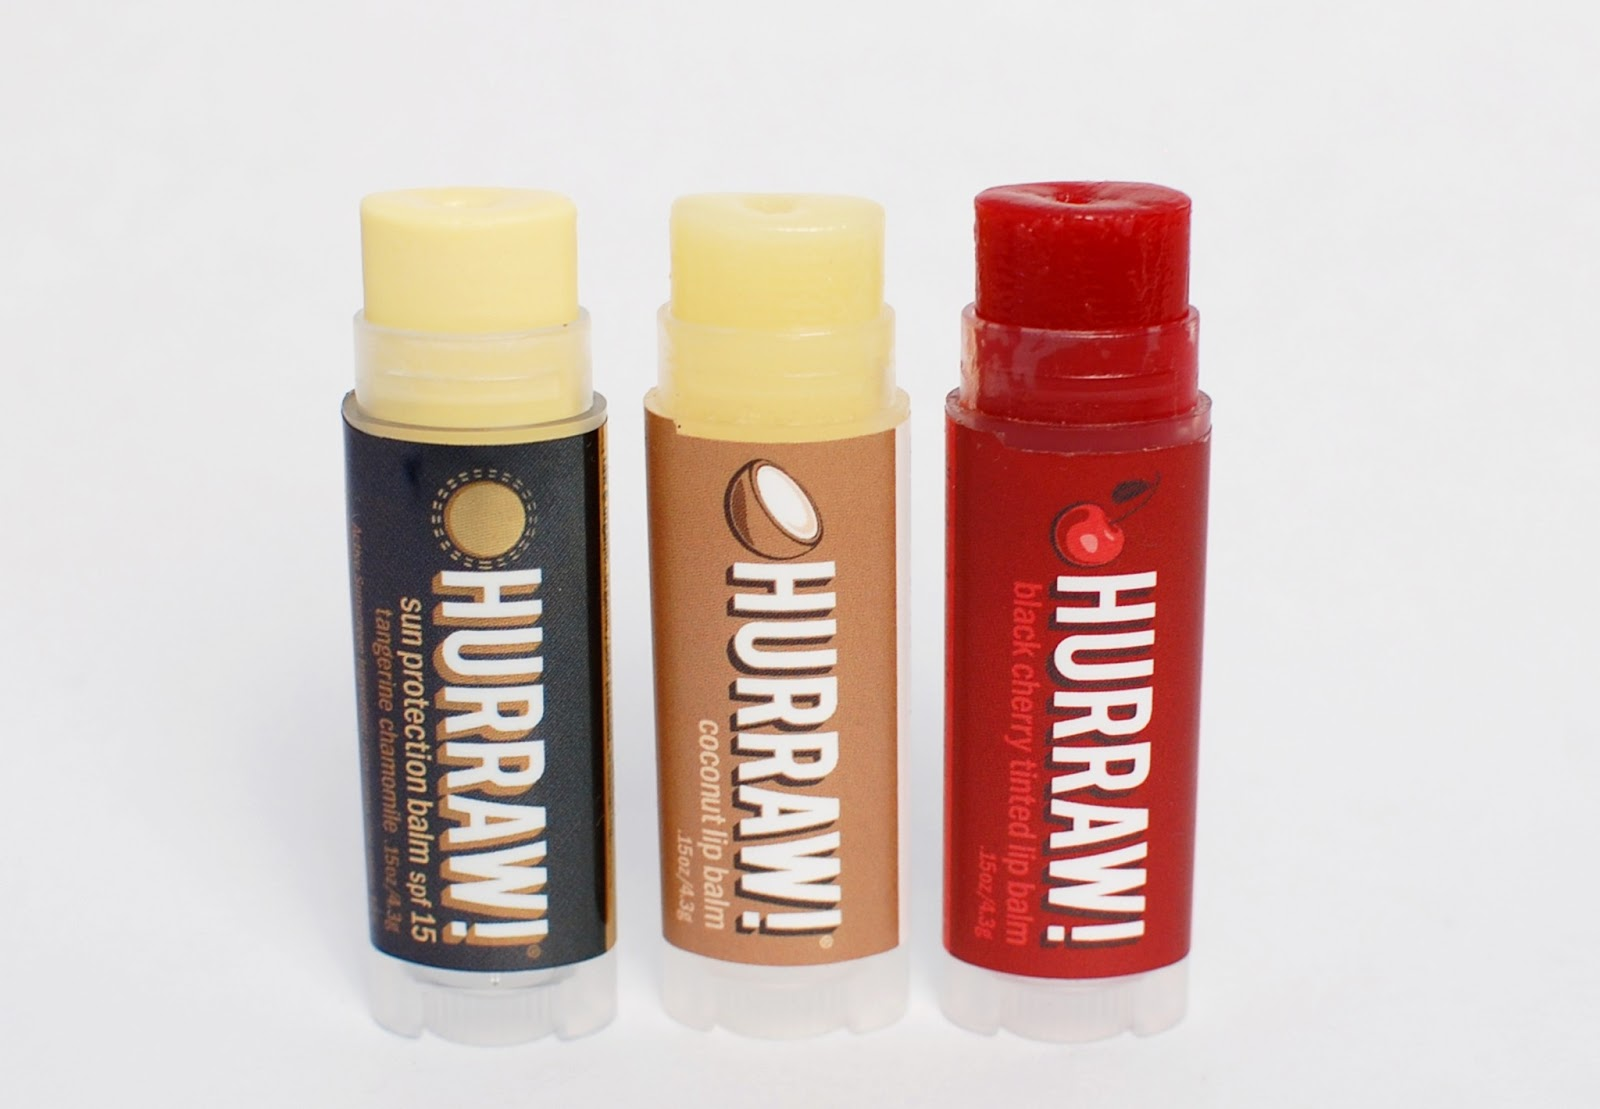 Hurraw! Sun Protection, Black Cherry, Coconut Balm